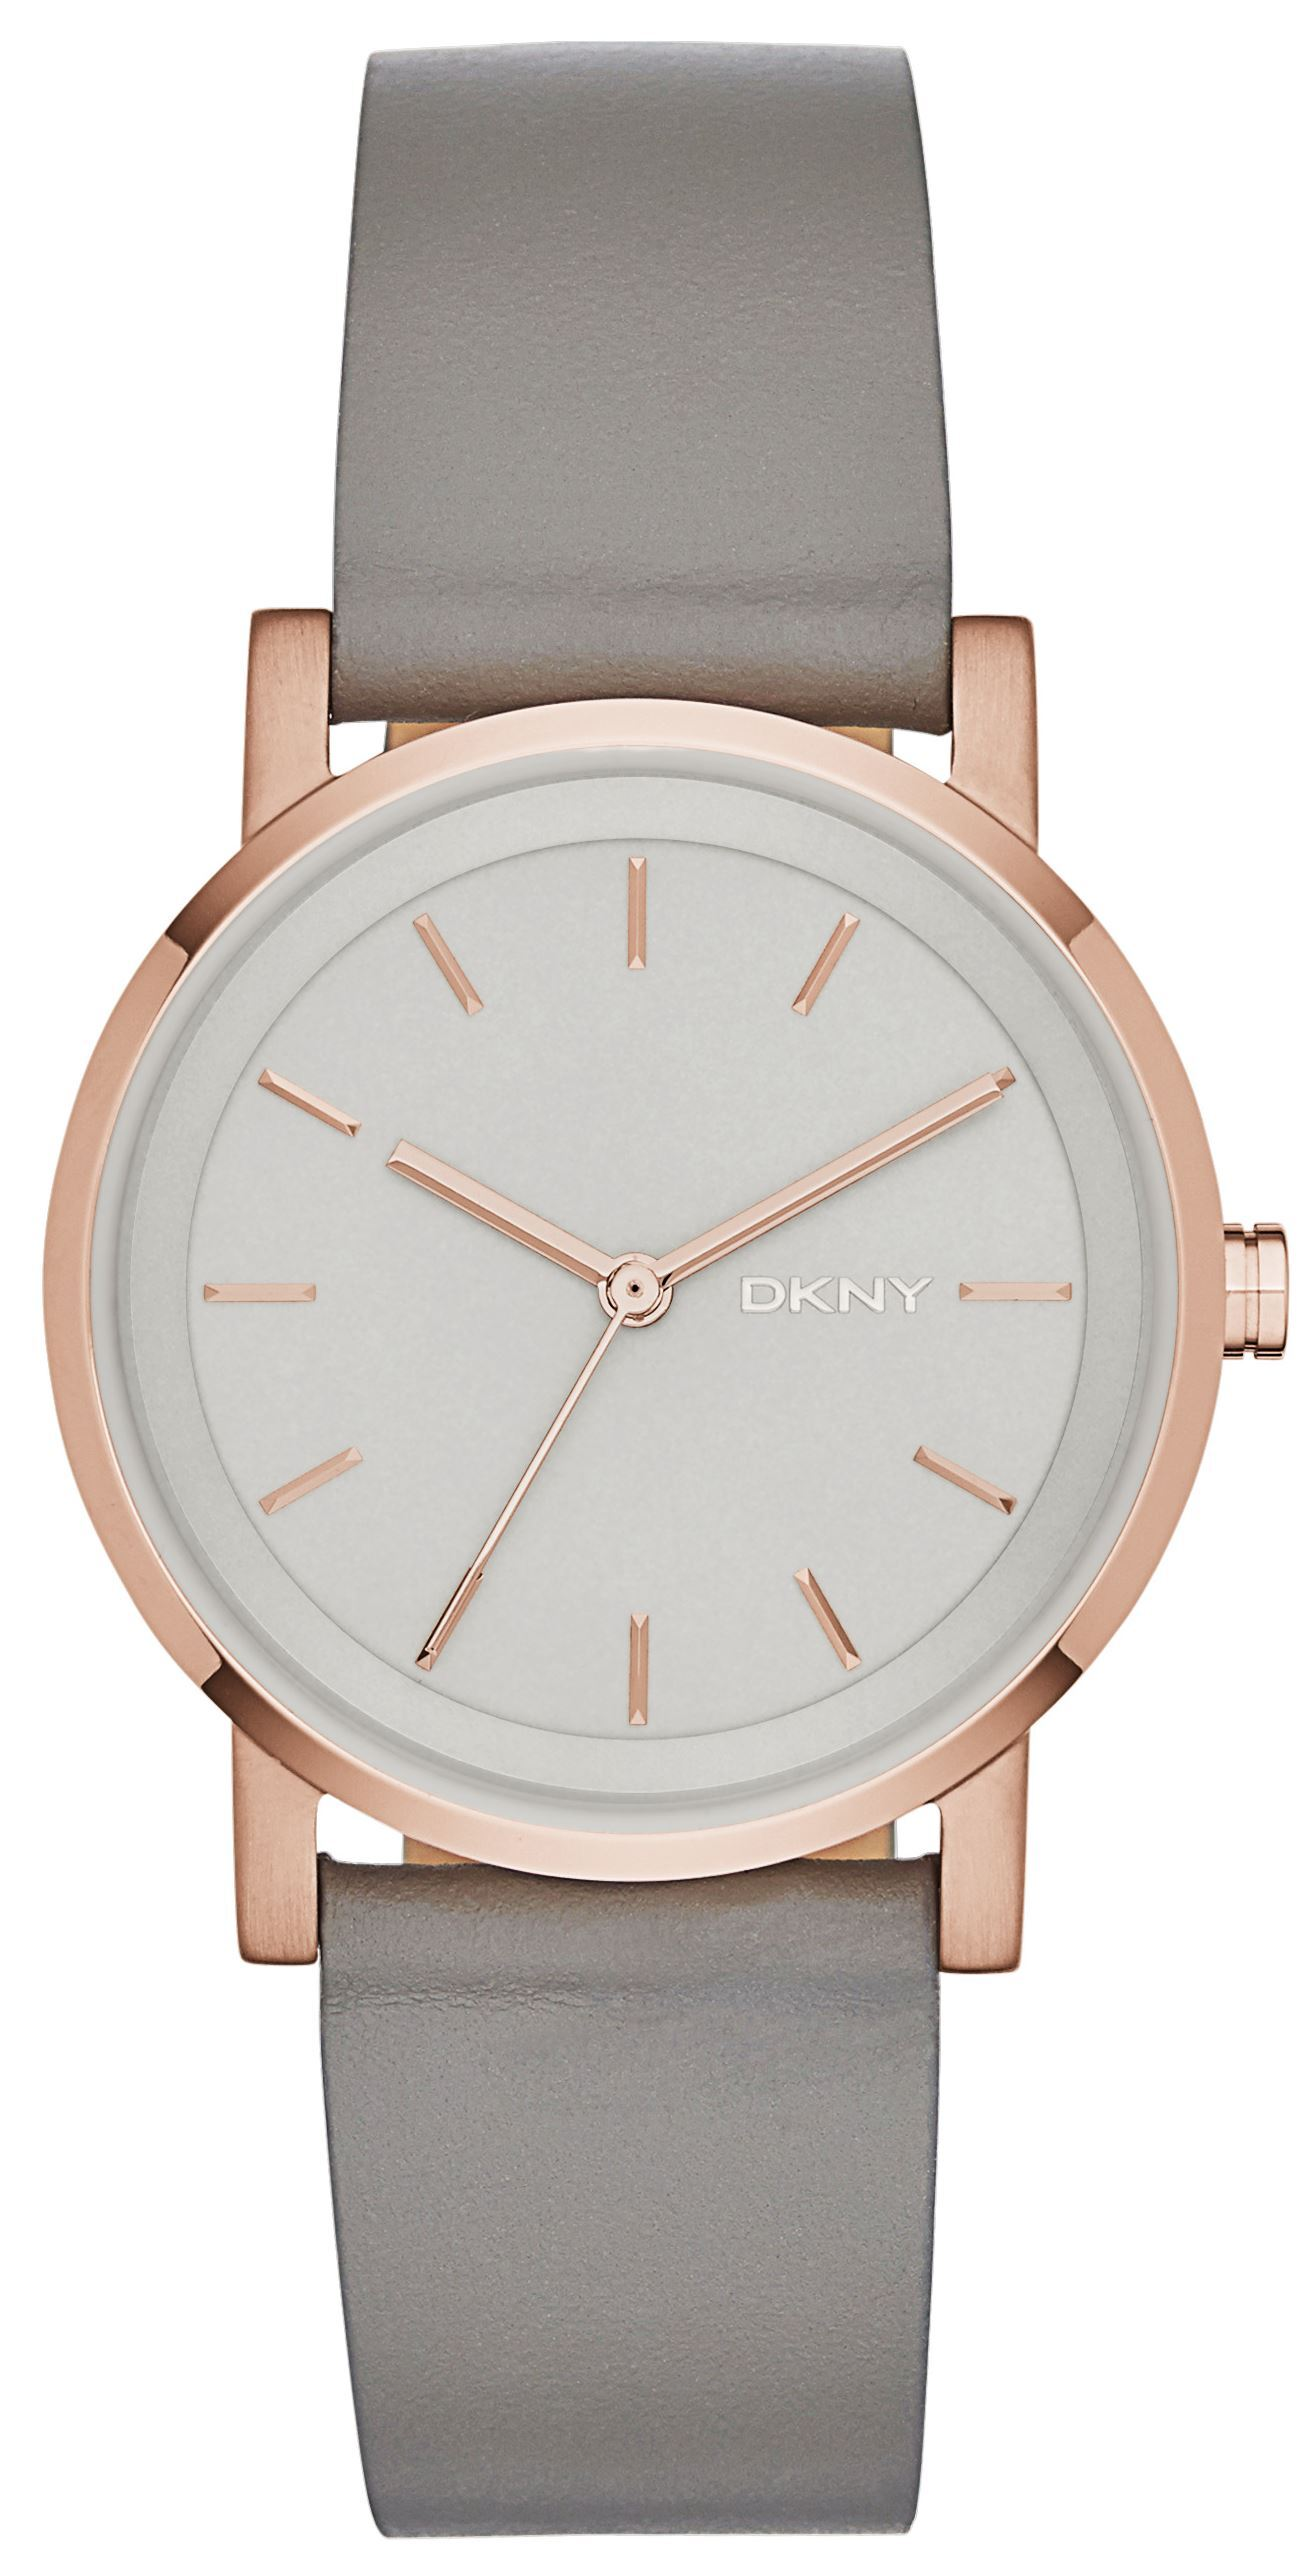 DKNY Dress Dameklokke NY2341 Grå/Lær Ø34 mm - DKNY